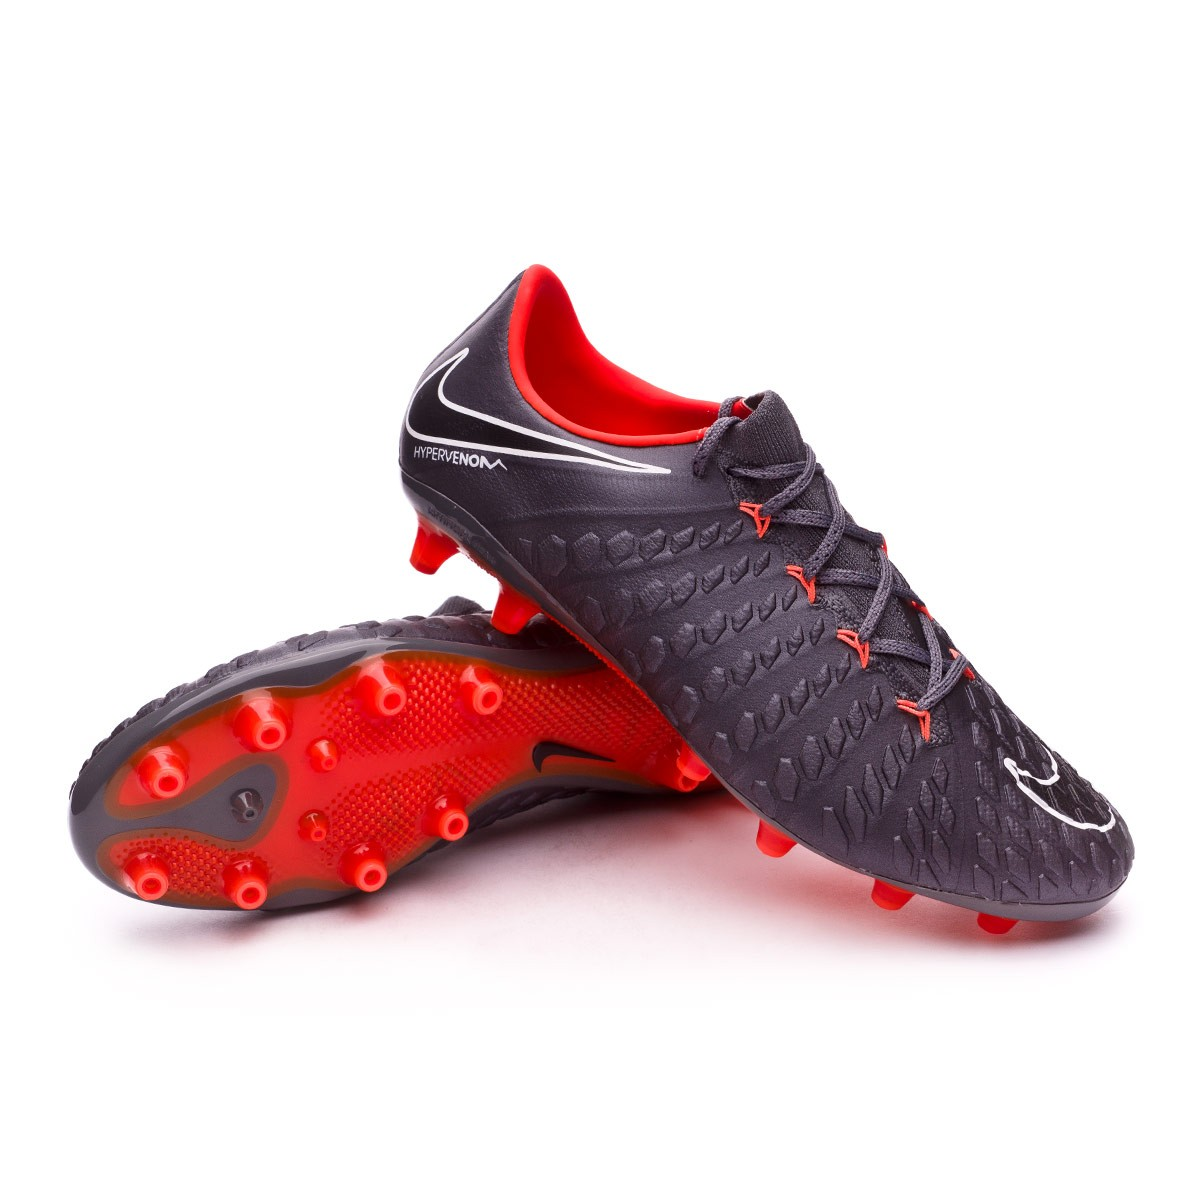 Boot Nike Hypervenom Phantom III Elite AG-Pro Dark grey-Total orange ... 4dbc9847e9f1